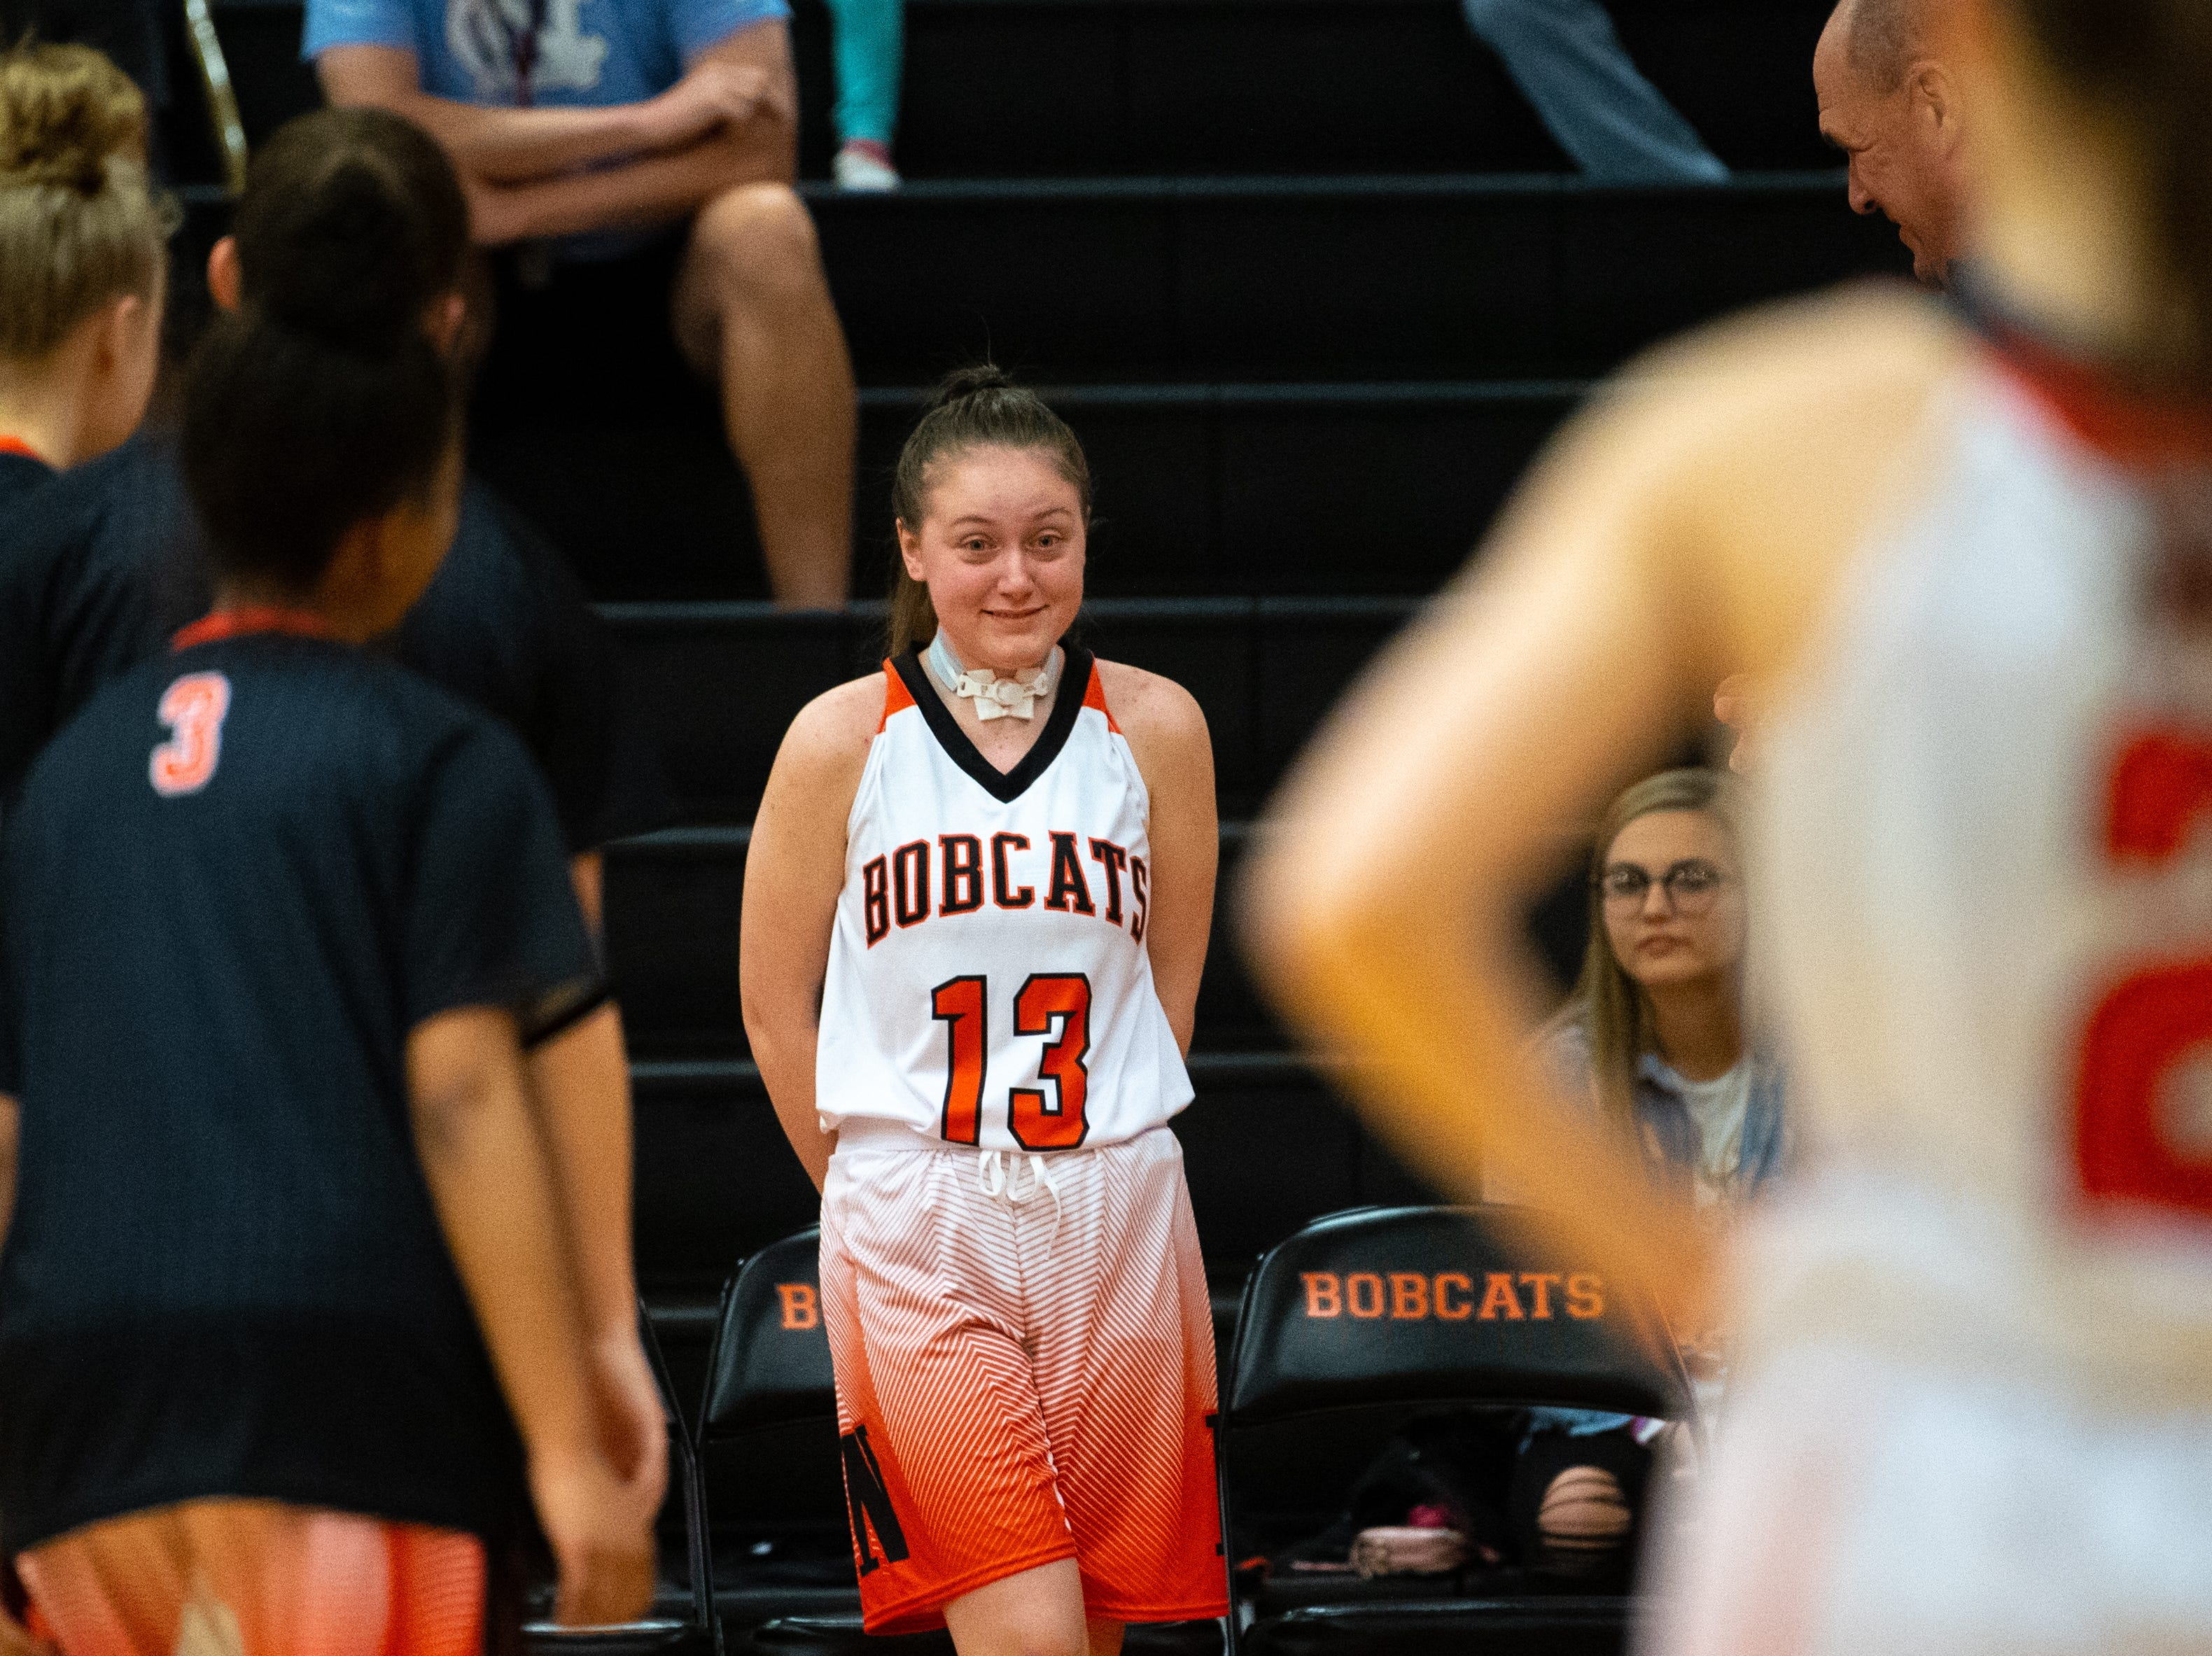 Audrey Johnson (13) receives a heartfelt introduction before the game against Cocalico, December 12, 2018.